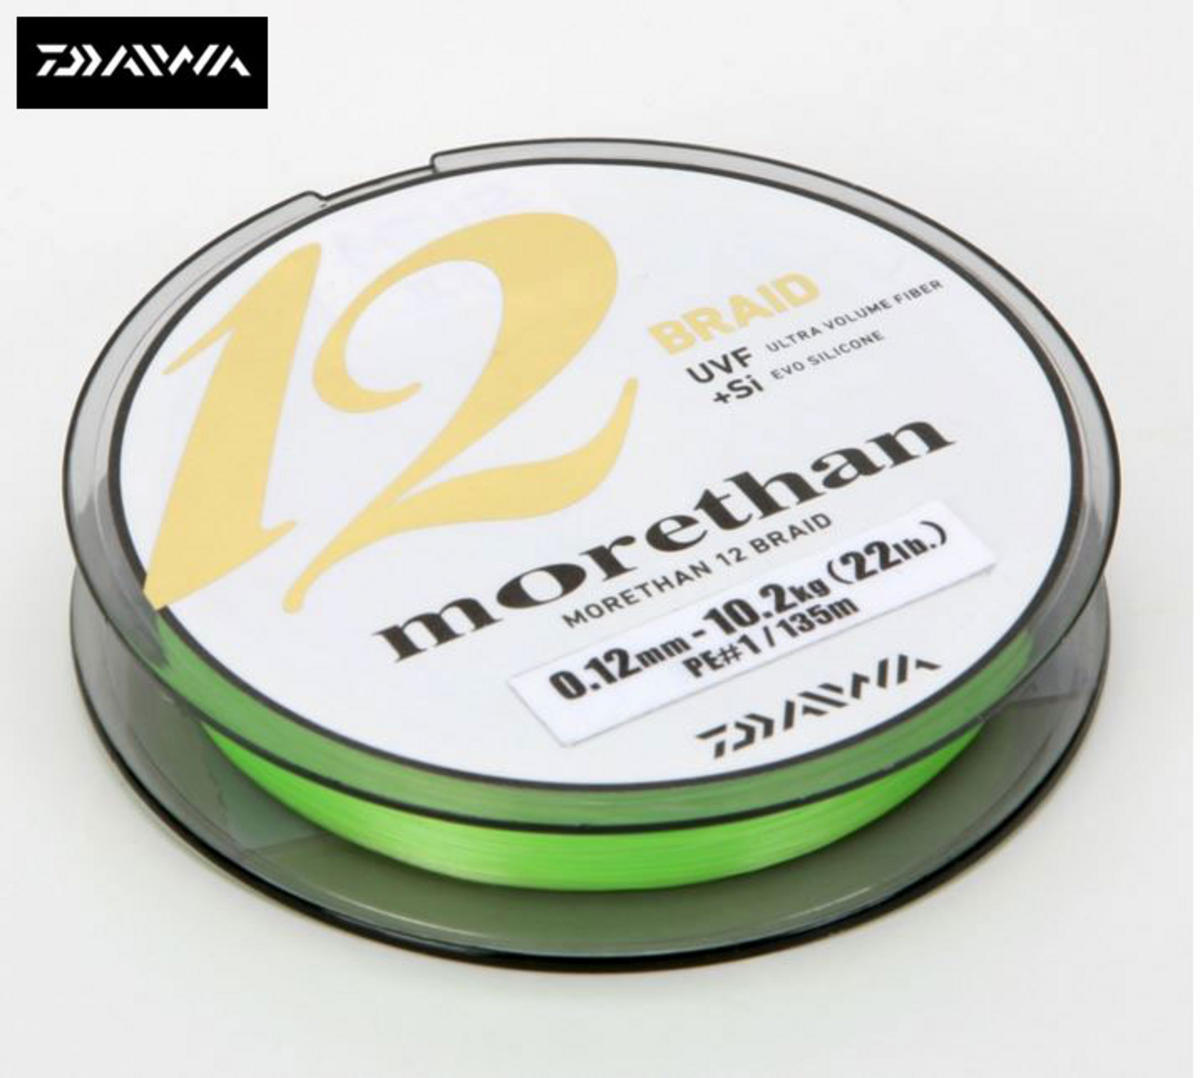 NEW DAIWA MT 12 MORETHAN BRAID 135m SPOOL ALL BREAKING STRAINS